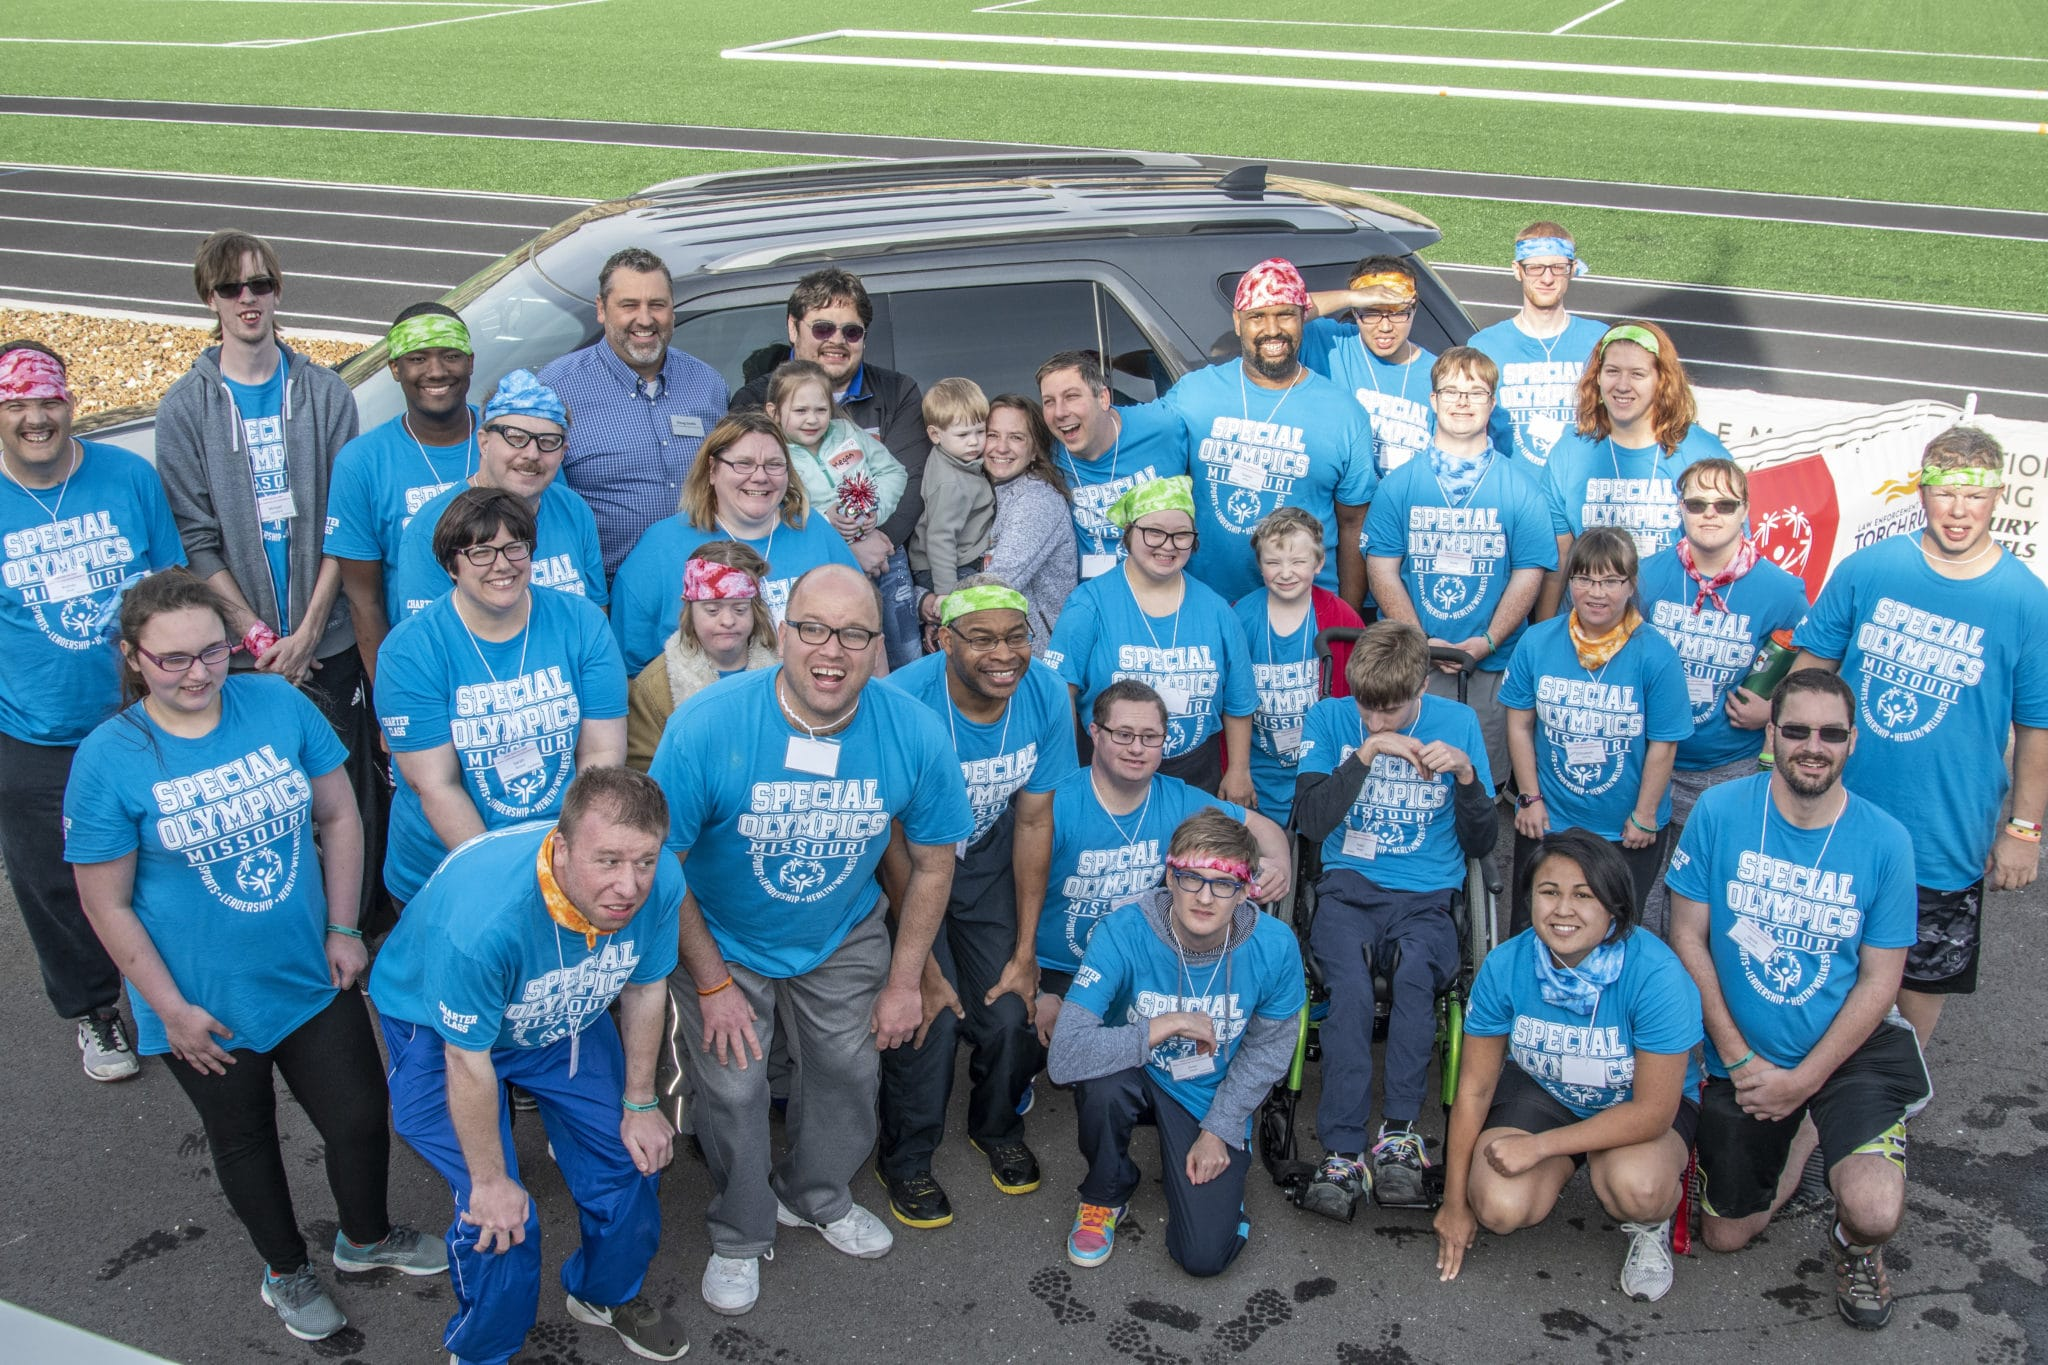 A group of two dozen athletes pose for a photo with car raffle winners